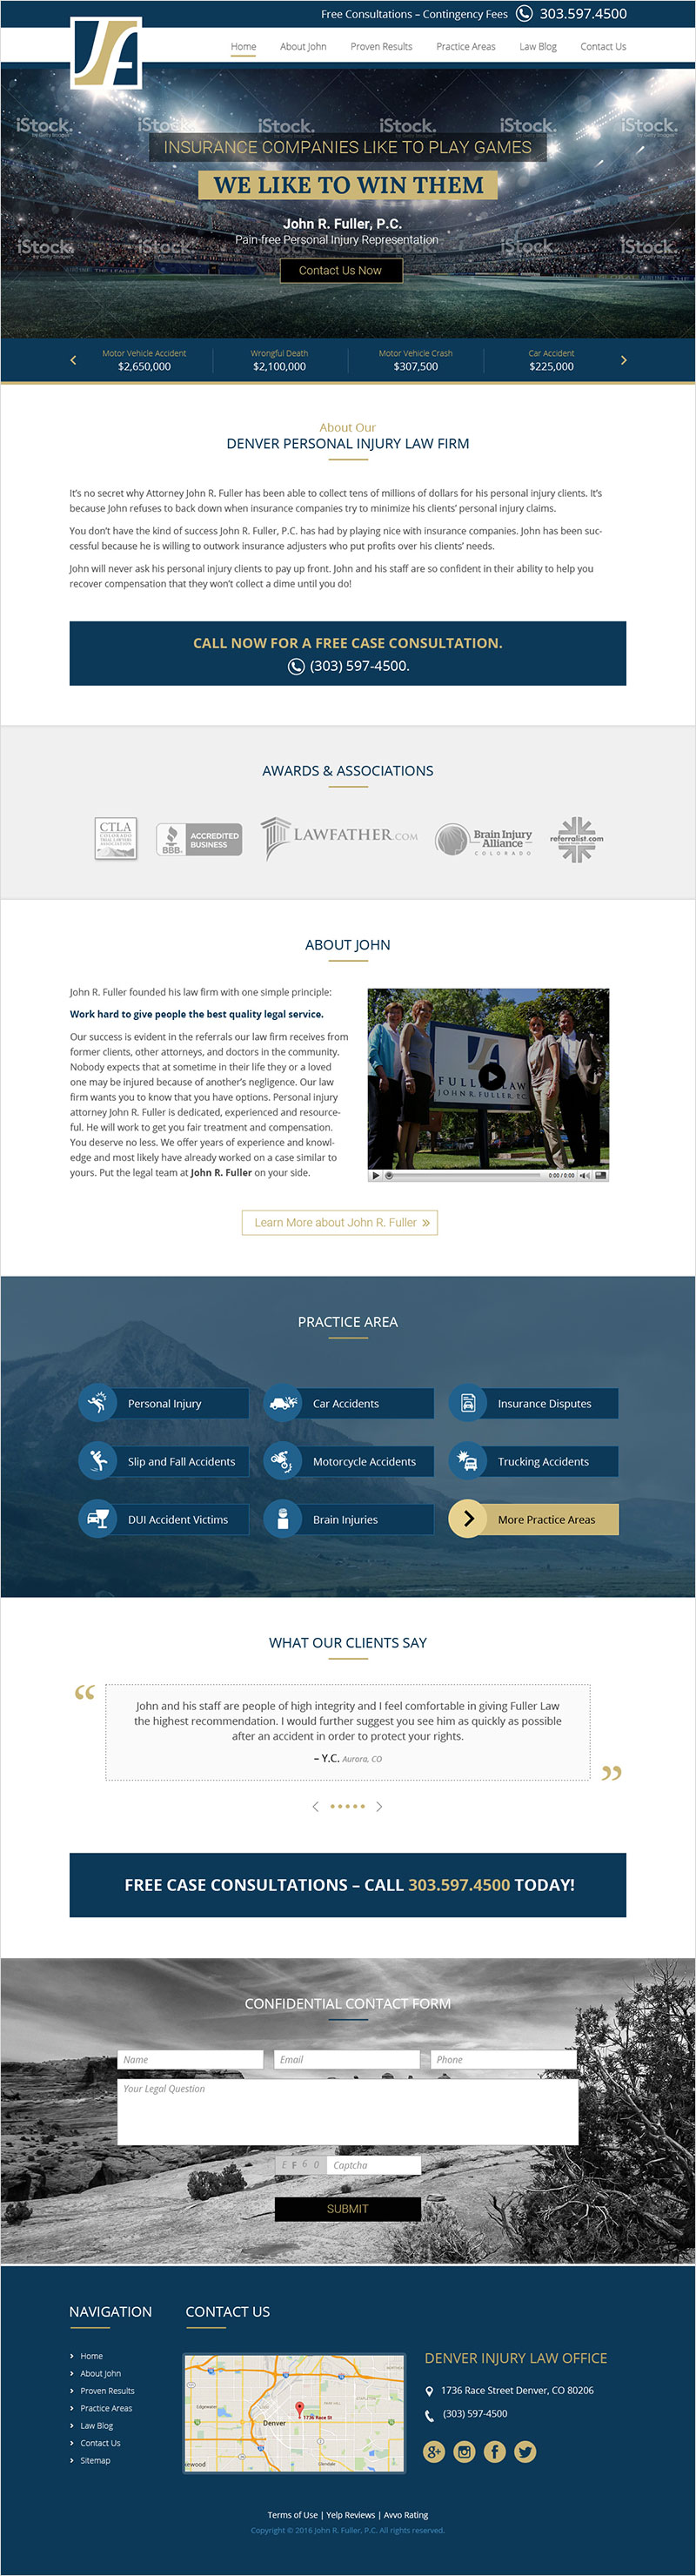 John Fuller - Website Design